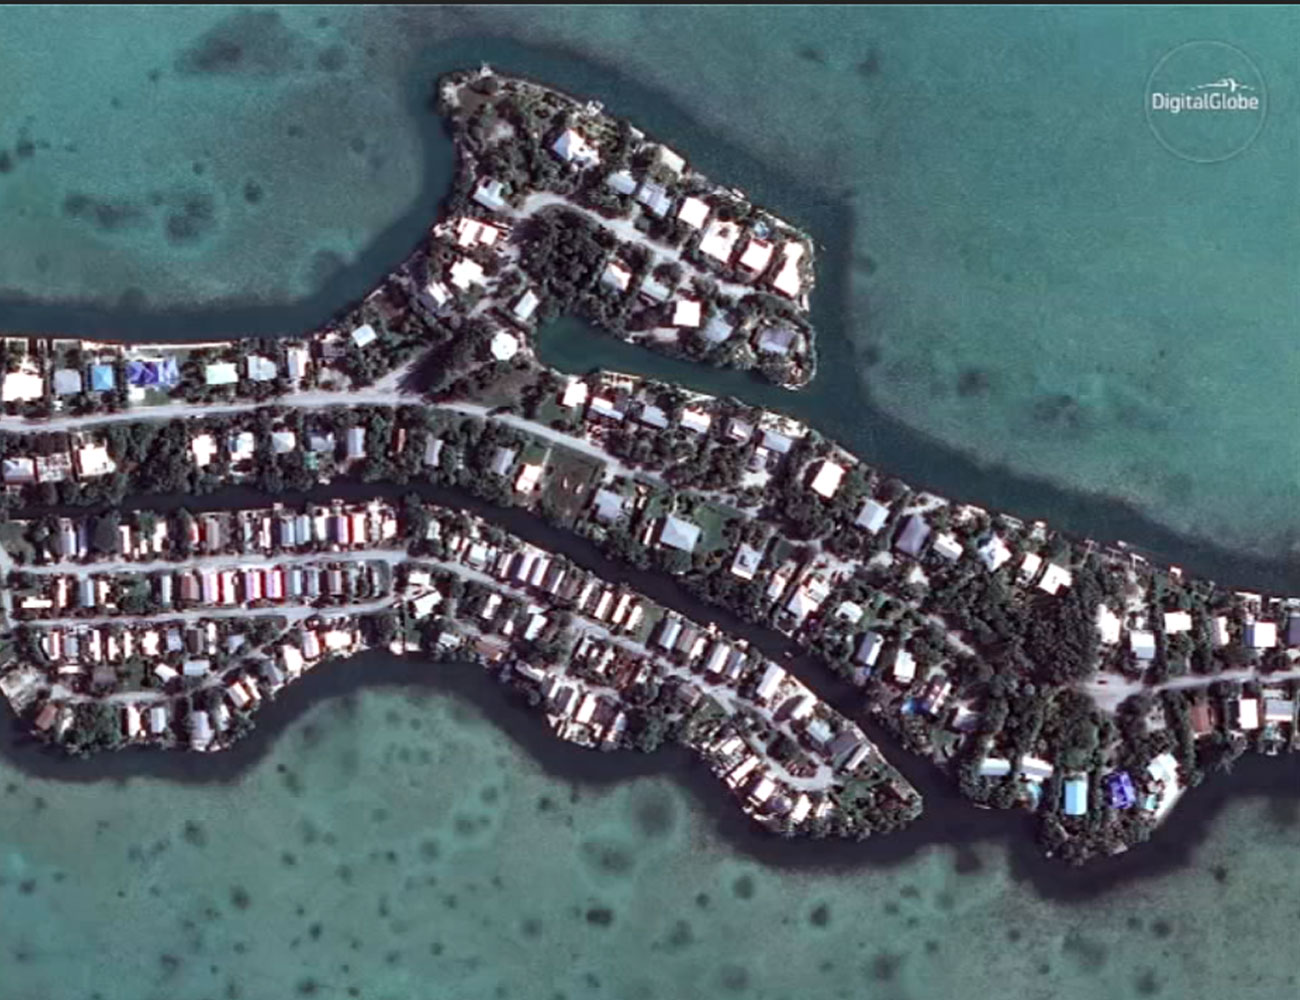 <div class='meta'><div class='origin-logo' data-origin='none'></div><span class='caption-text' data-credit='DigitalGlobe'>Key West, Florida - Jan. 16, 2016</span></div>